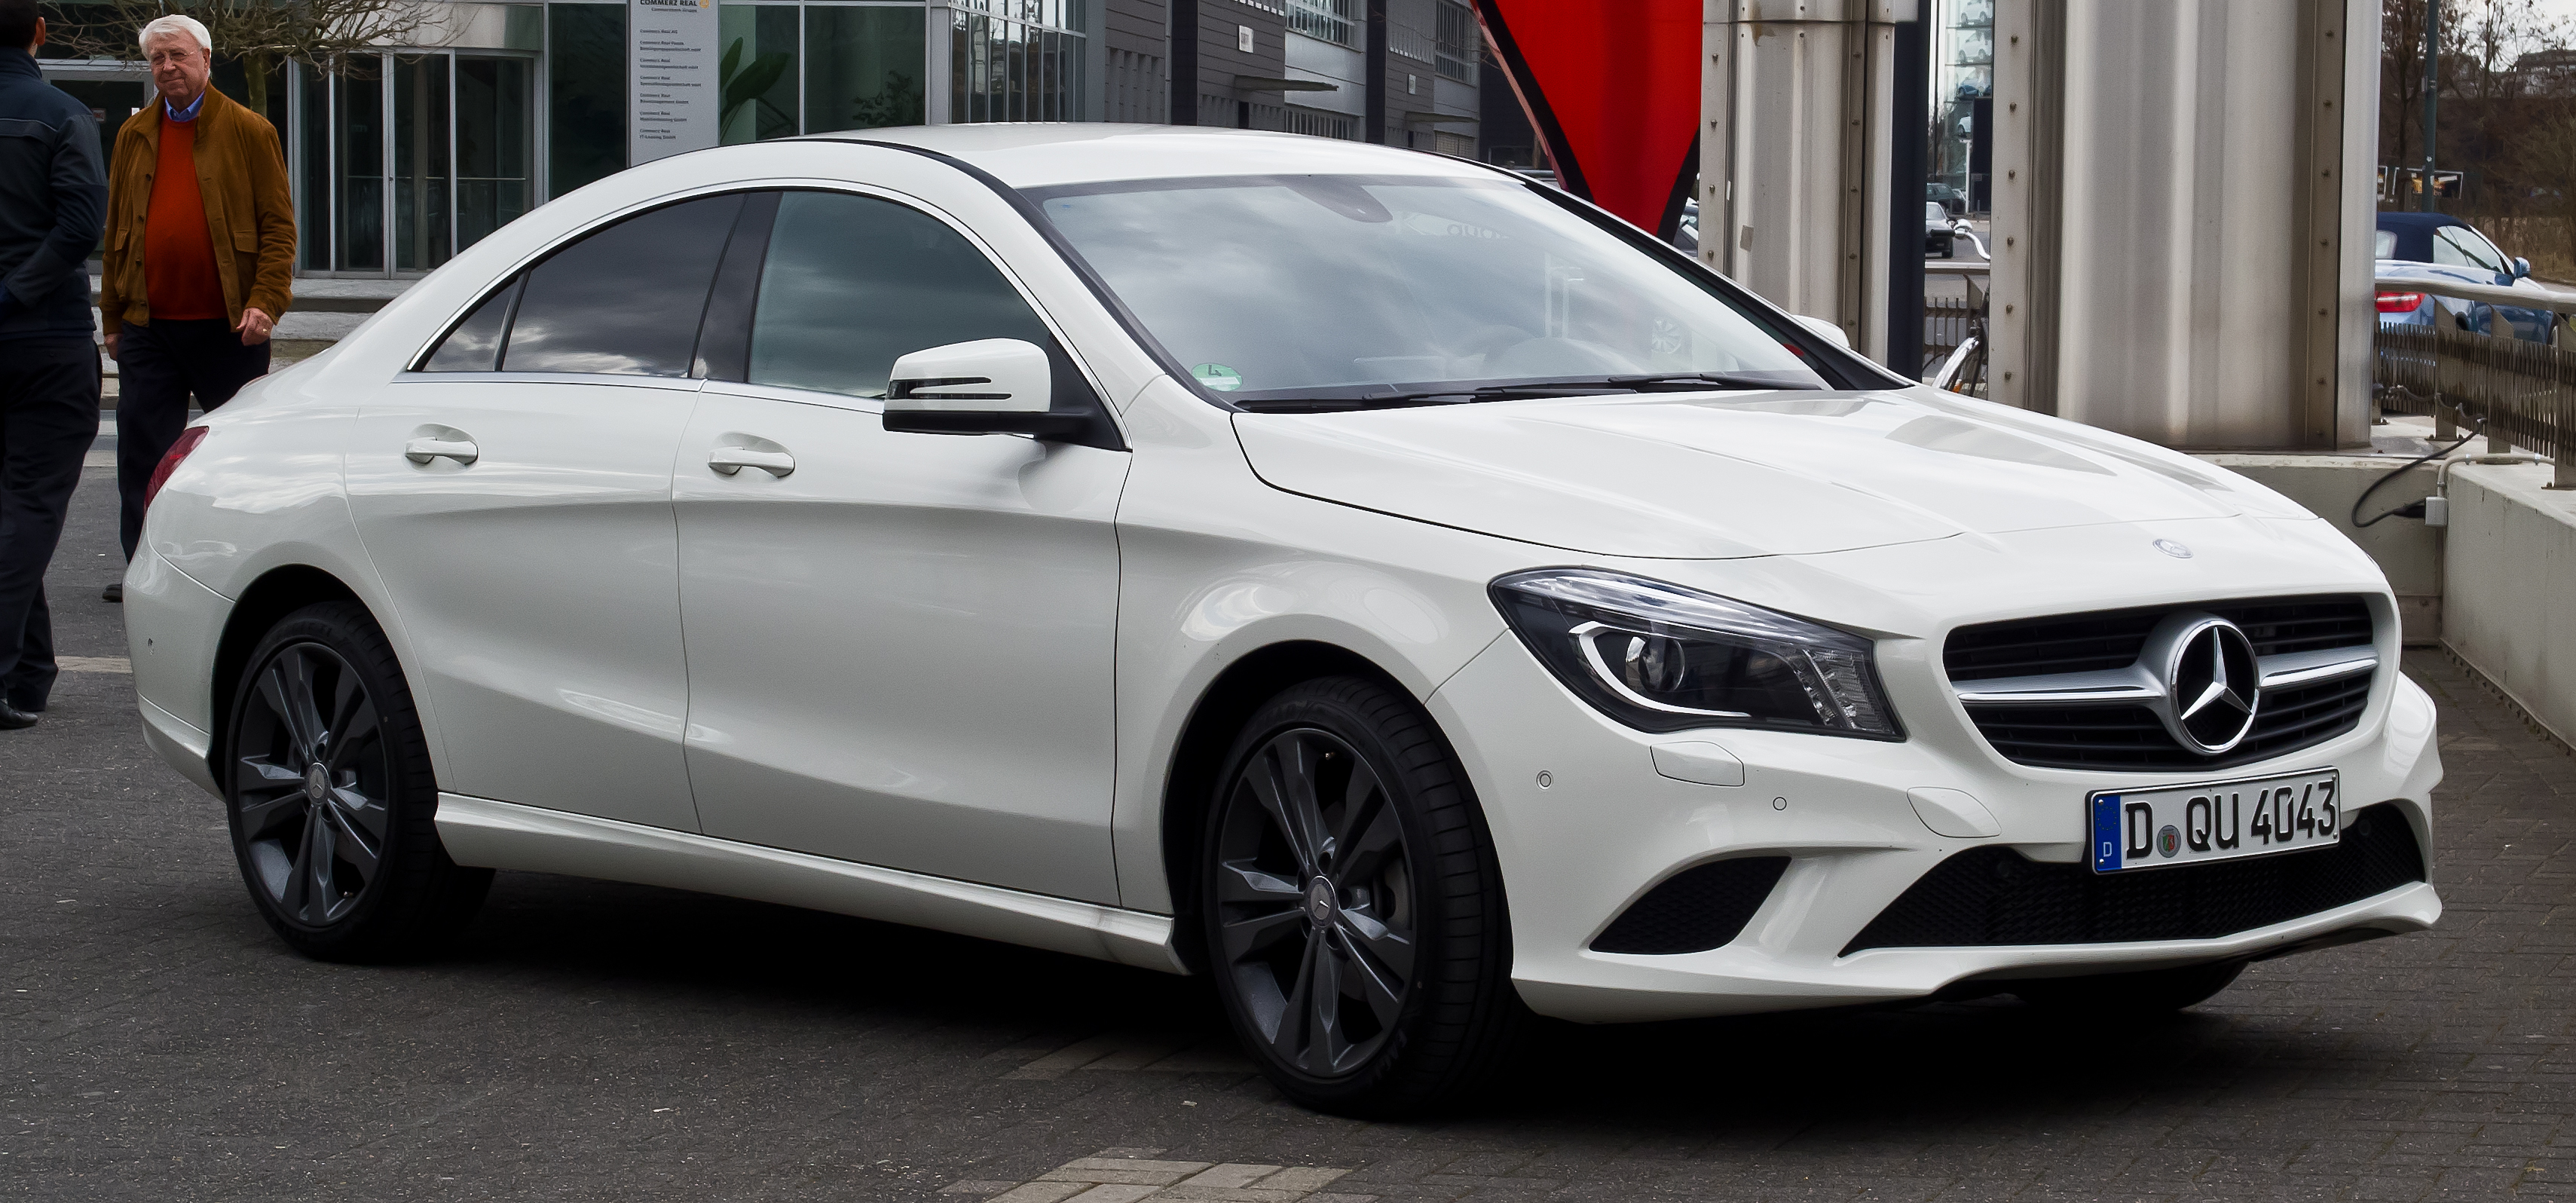 mercedes benz cla class 2017 prices in pakistan pictures. Black Bedroom Furniture Sets. Home Design Ideas